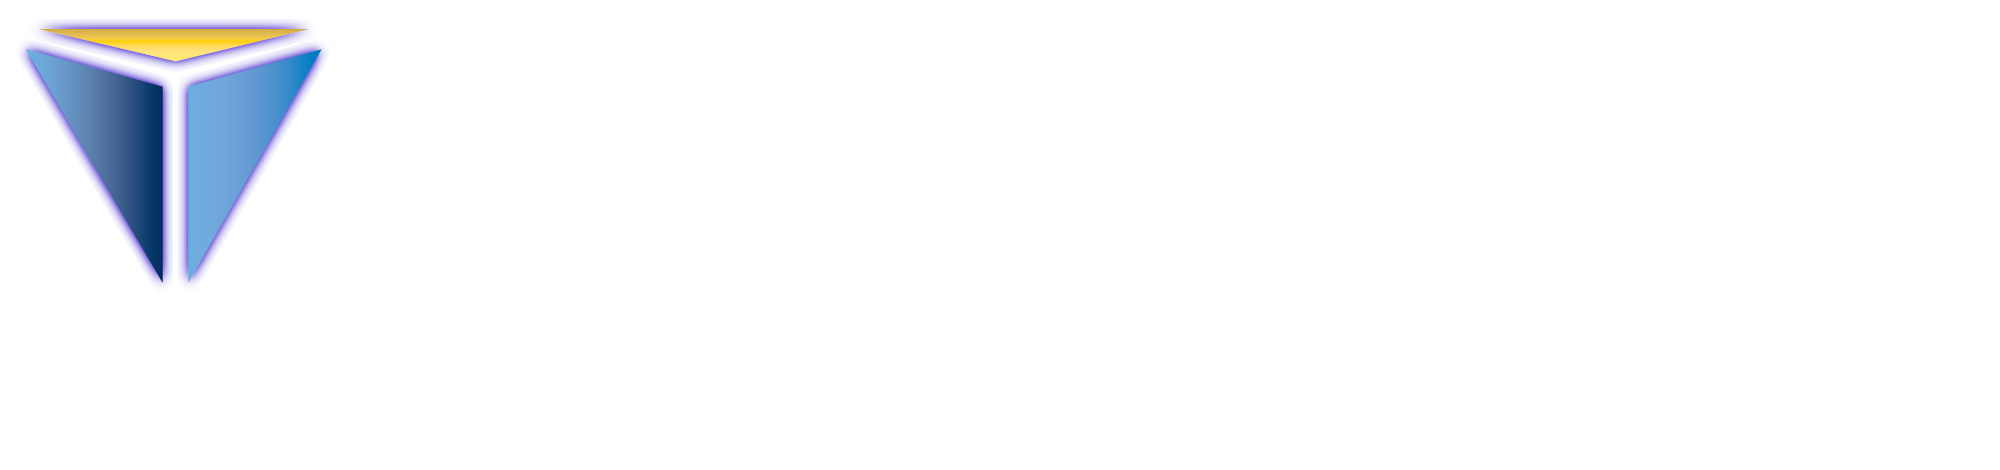 Trinity Capital, a division of Citizens Capital Markets | Investment Banking Advisory Services